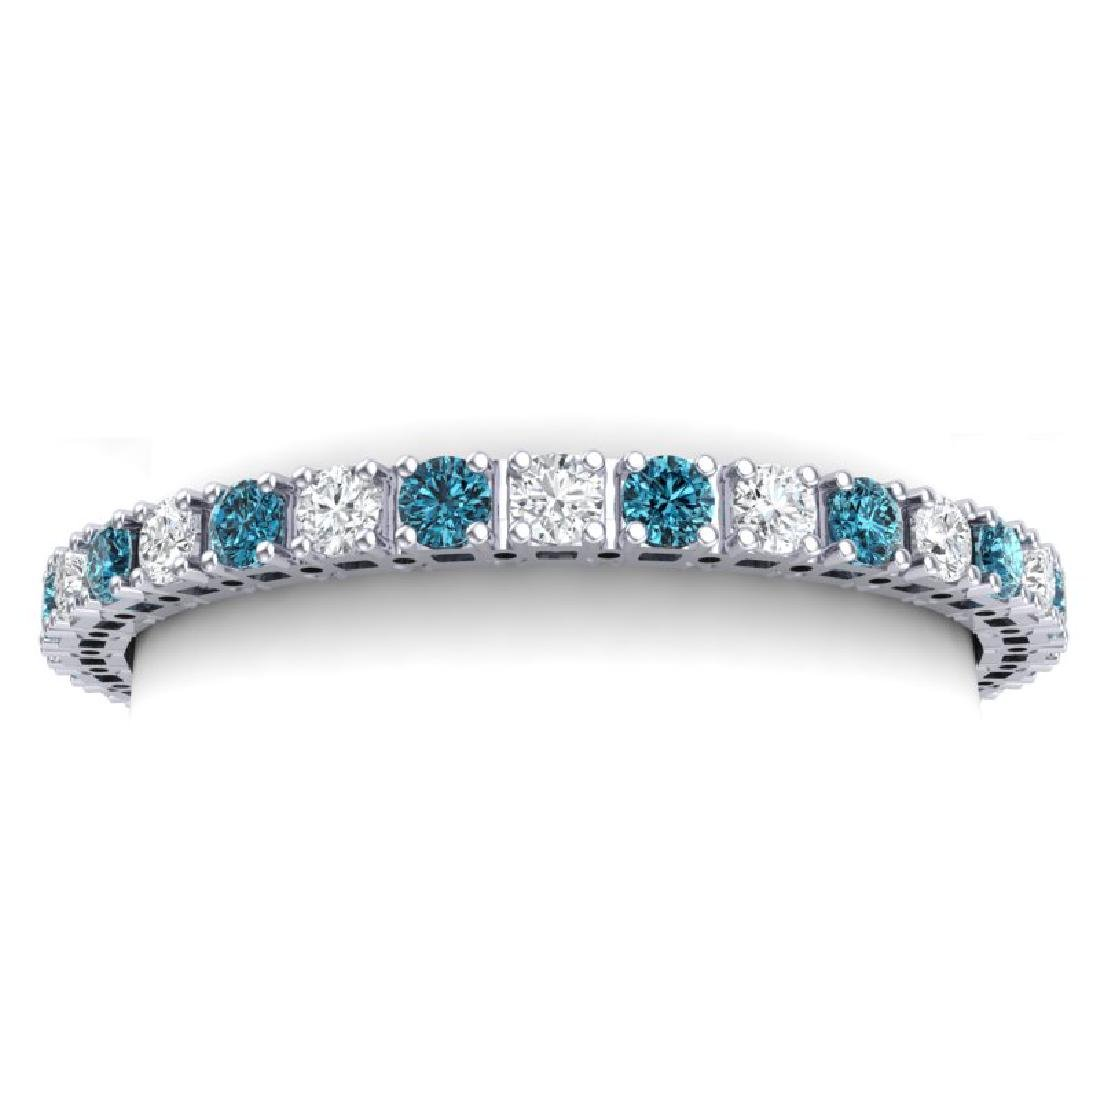 20 CTW SI/I Intense Blue & White Diamond Bracelet 18K - 2